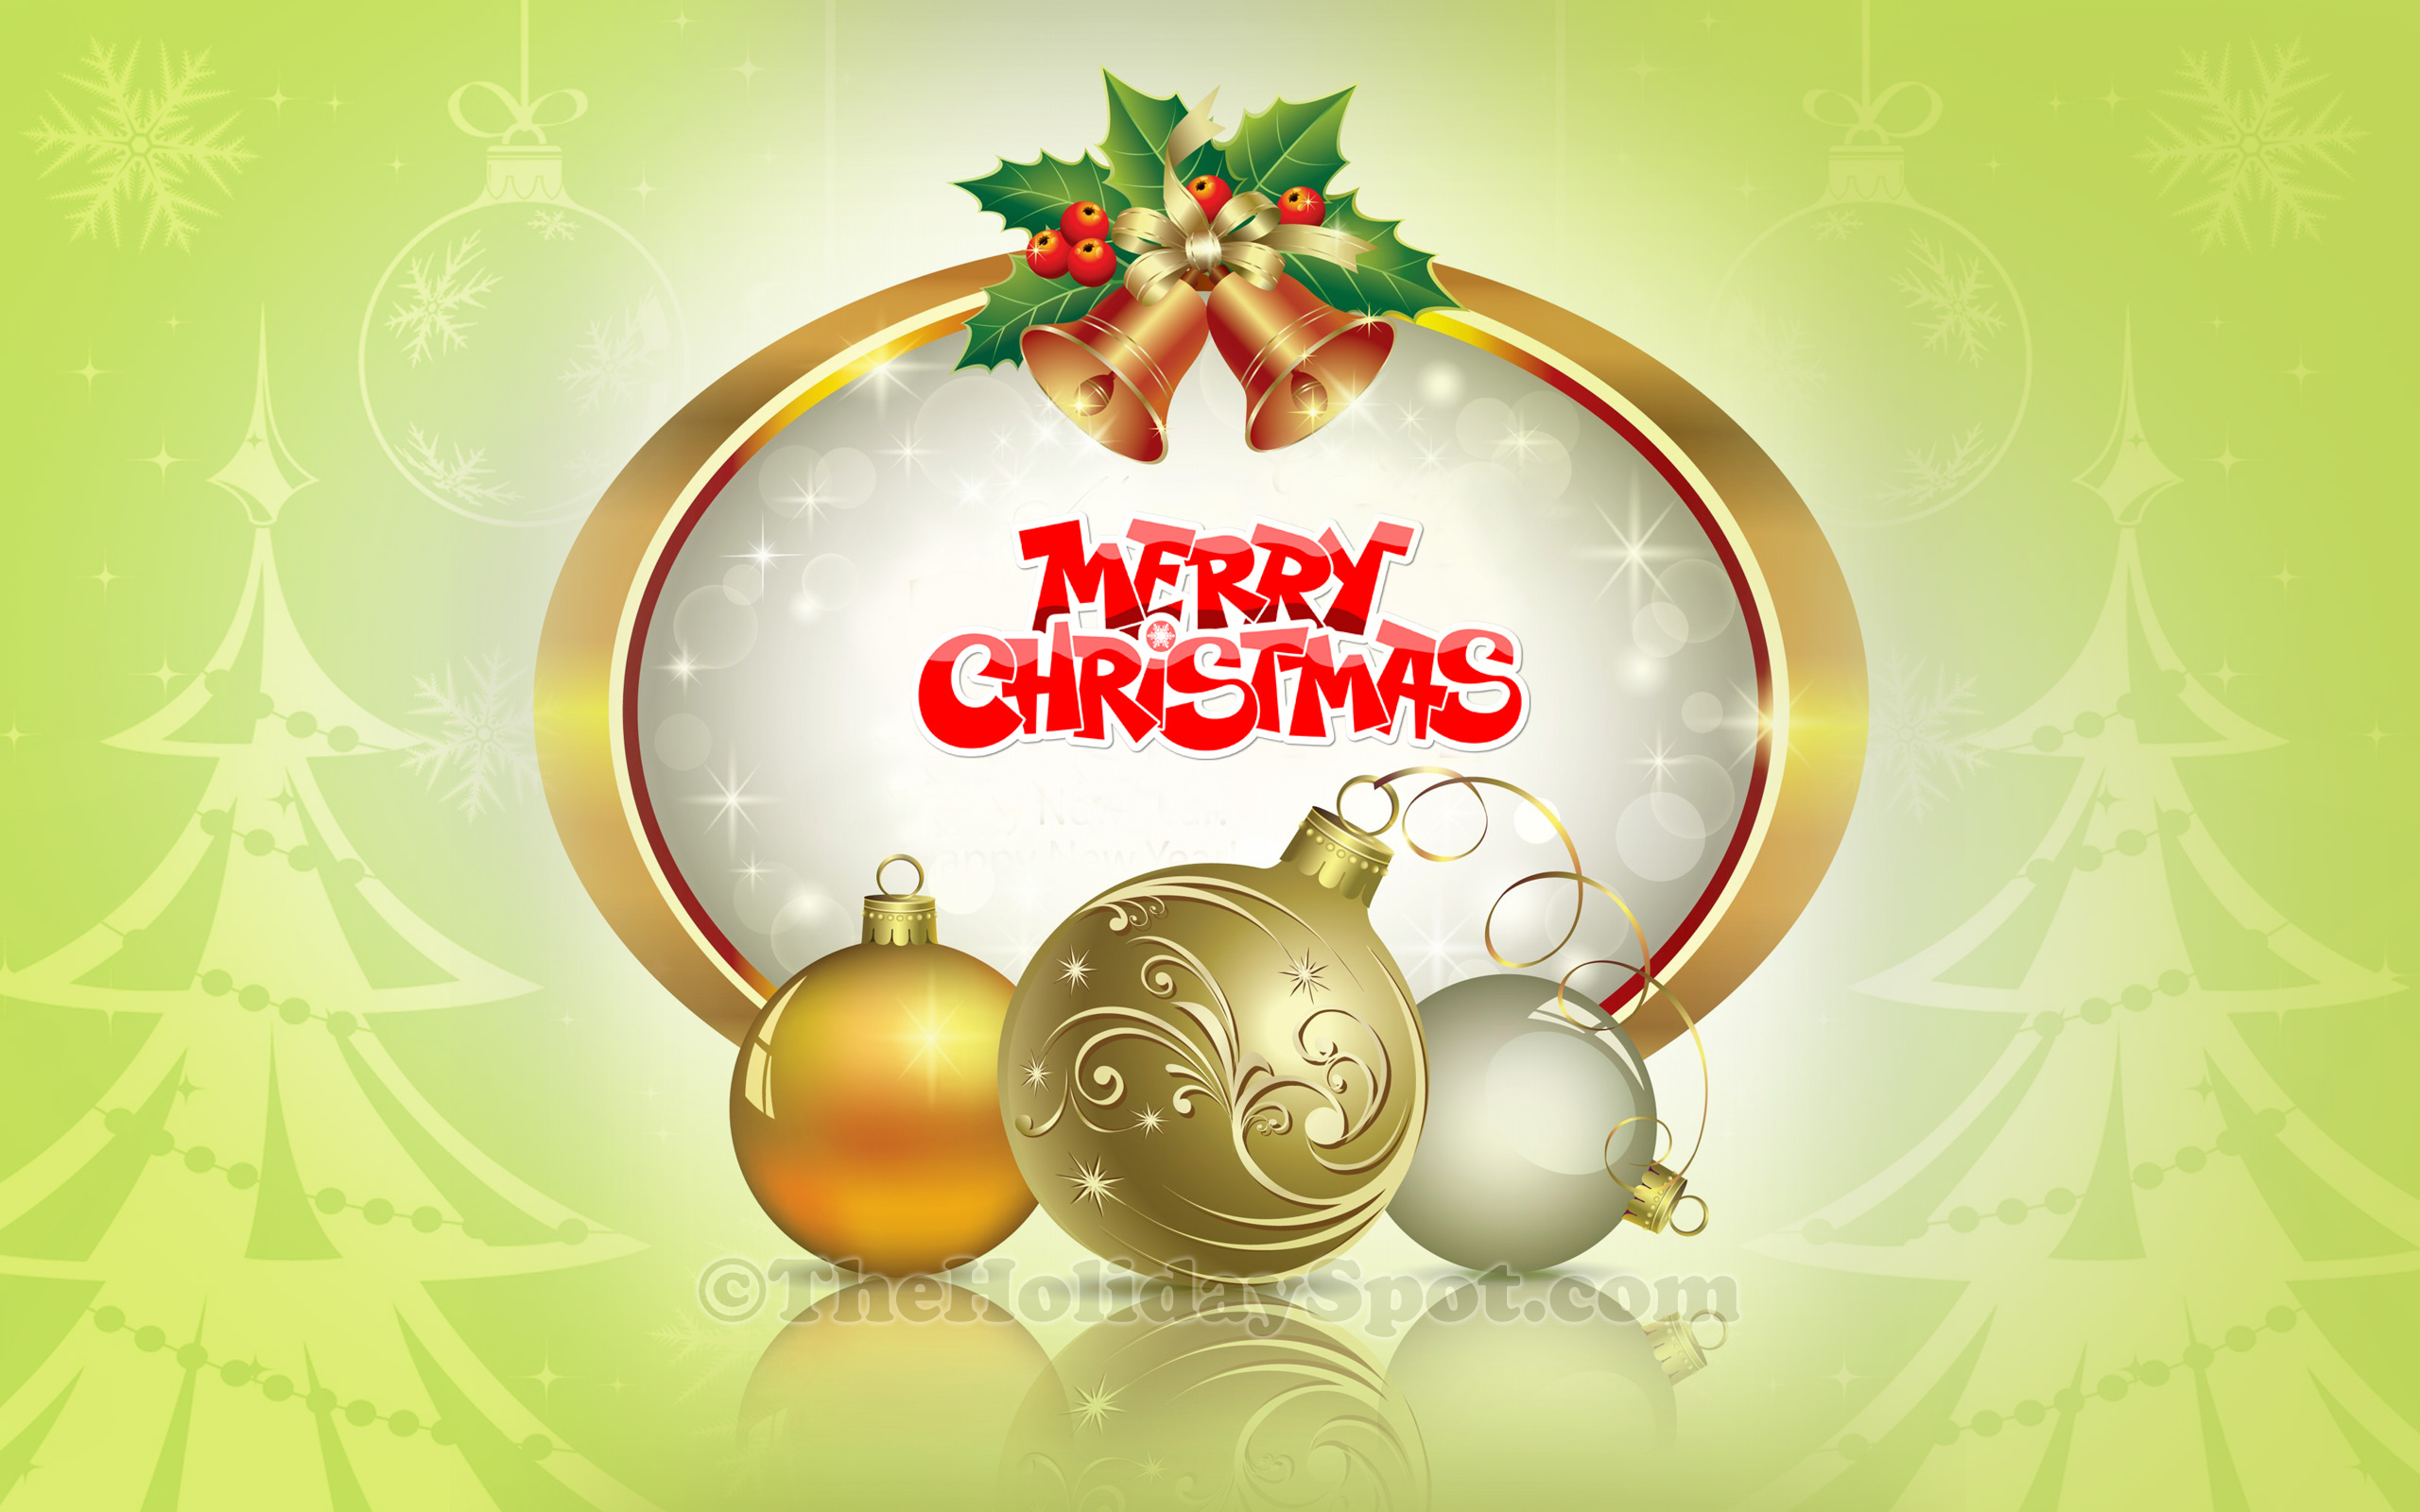 Christmas Background Hd.36 Hd Christmas Wallpapers